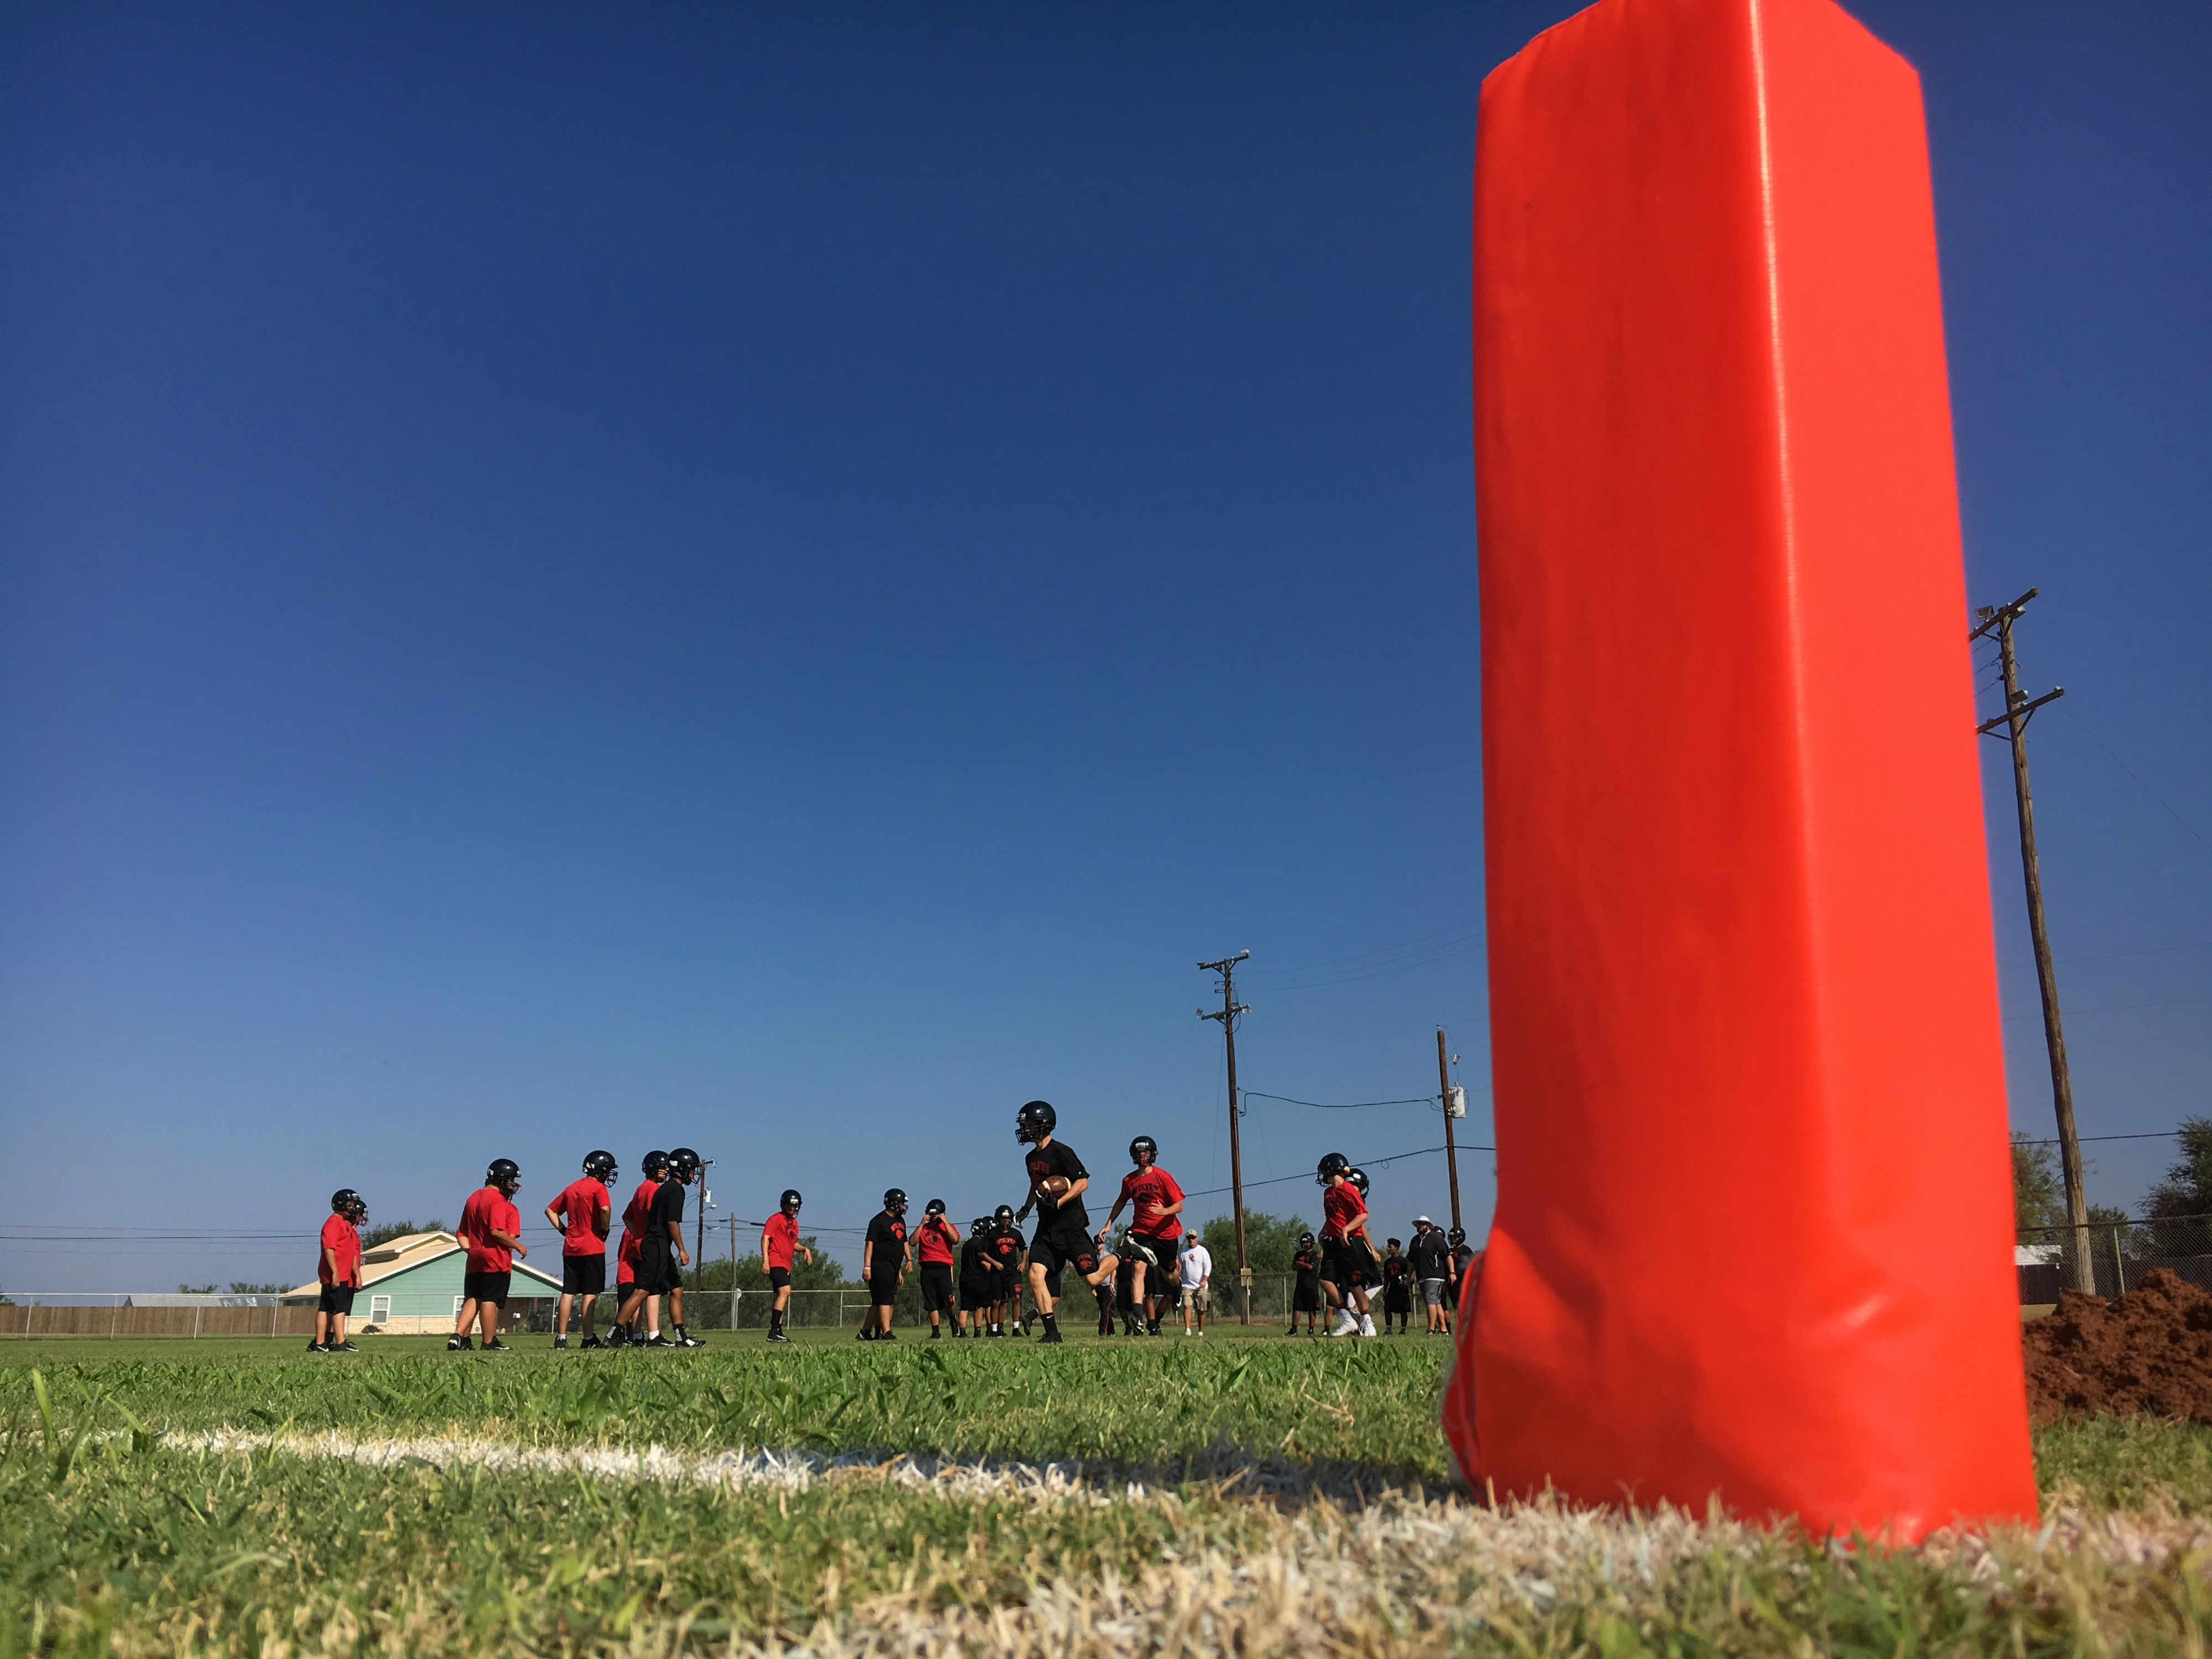 DAY 3: High school football practice -- Colorado High School (Photos by Chris Wilner& Evan Nemec)